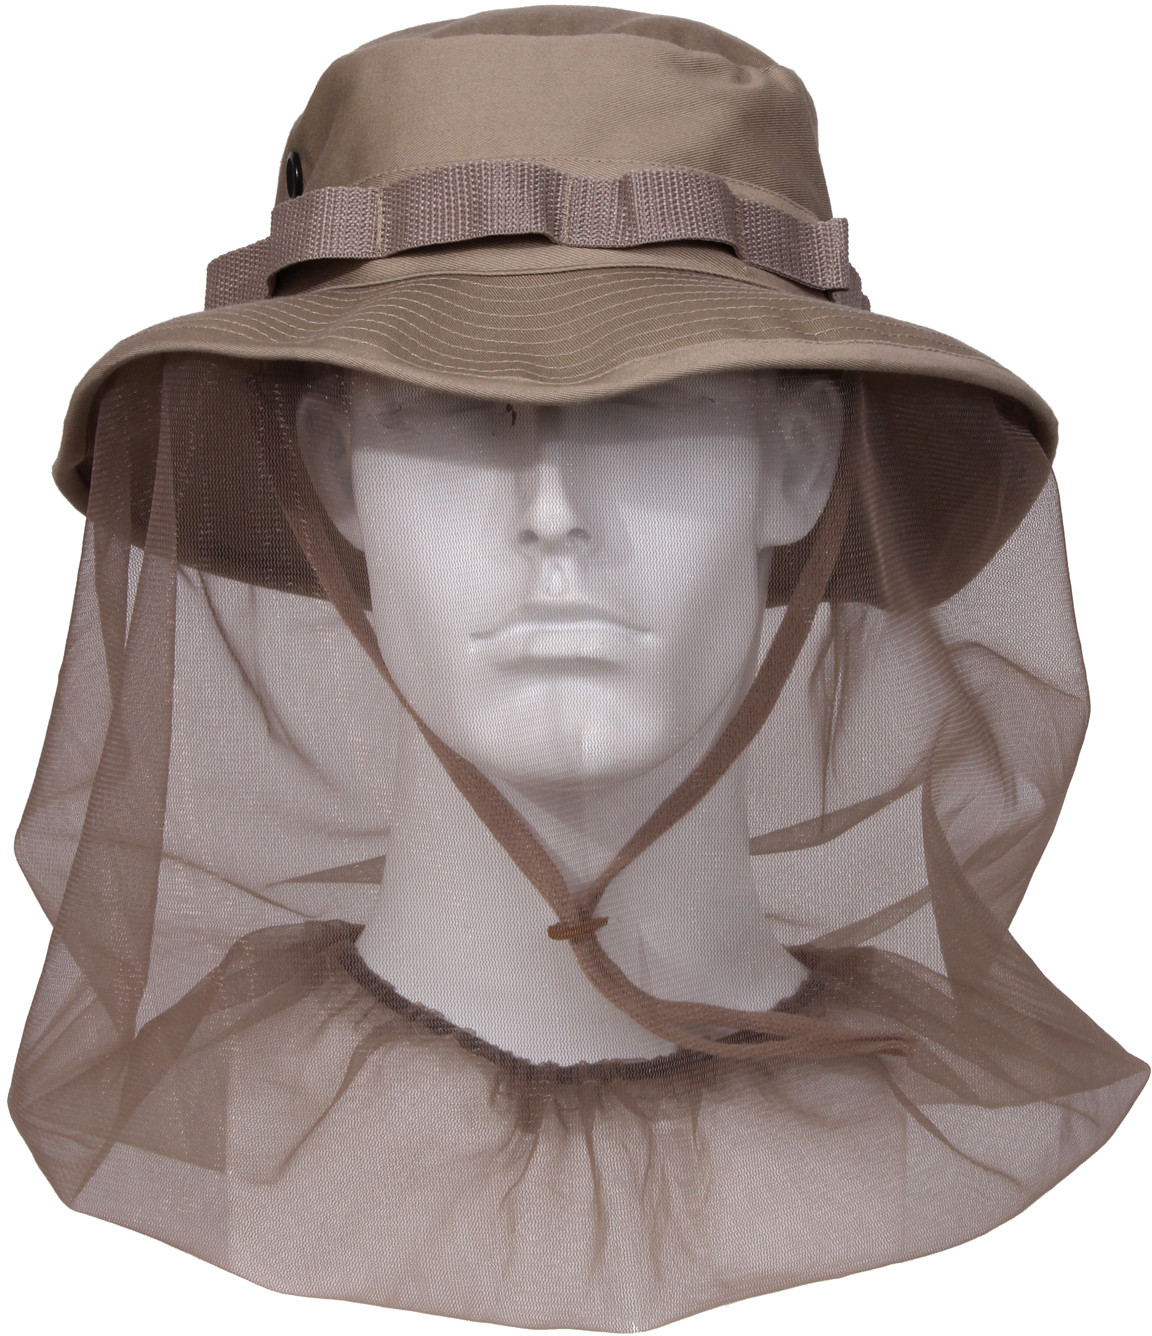 Khaki Military Wide Brim Boonie Hat With Mosquito Netting ee13bce1c7a